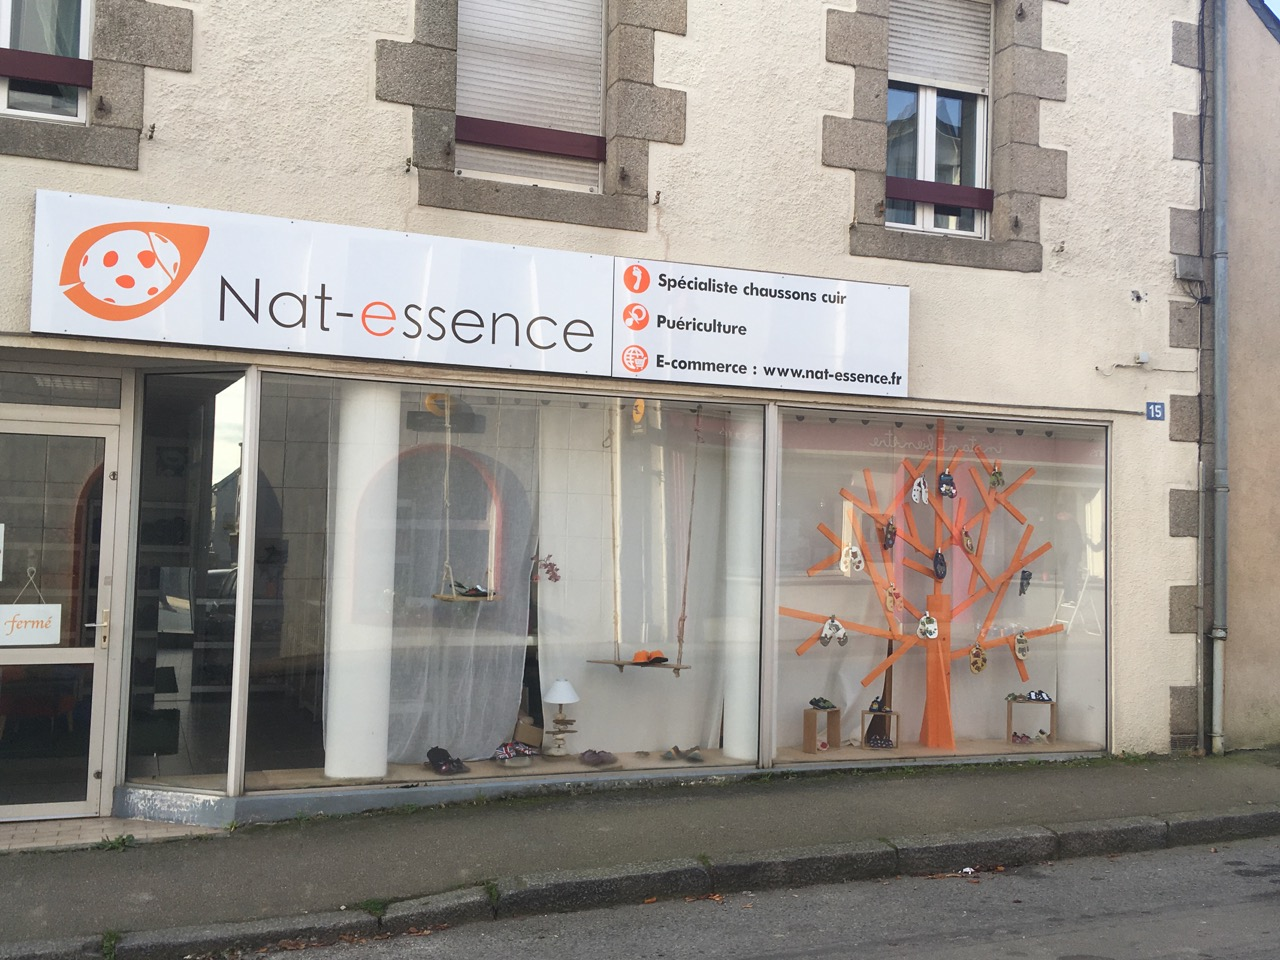 Devanture du magasin Nat-essence, 15 rue de la république, 56930 PLUMELIAU